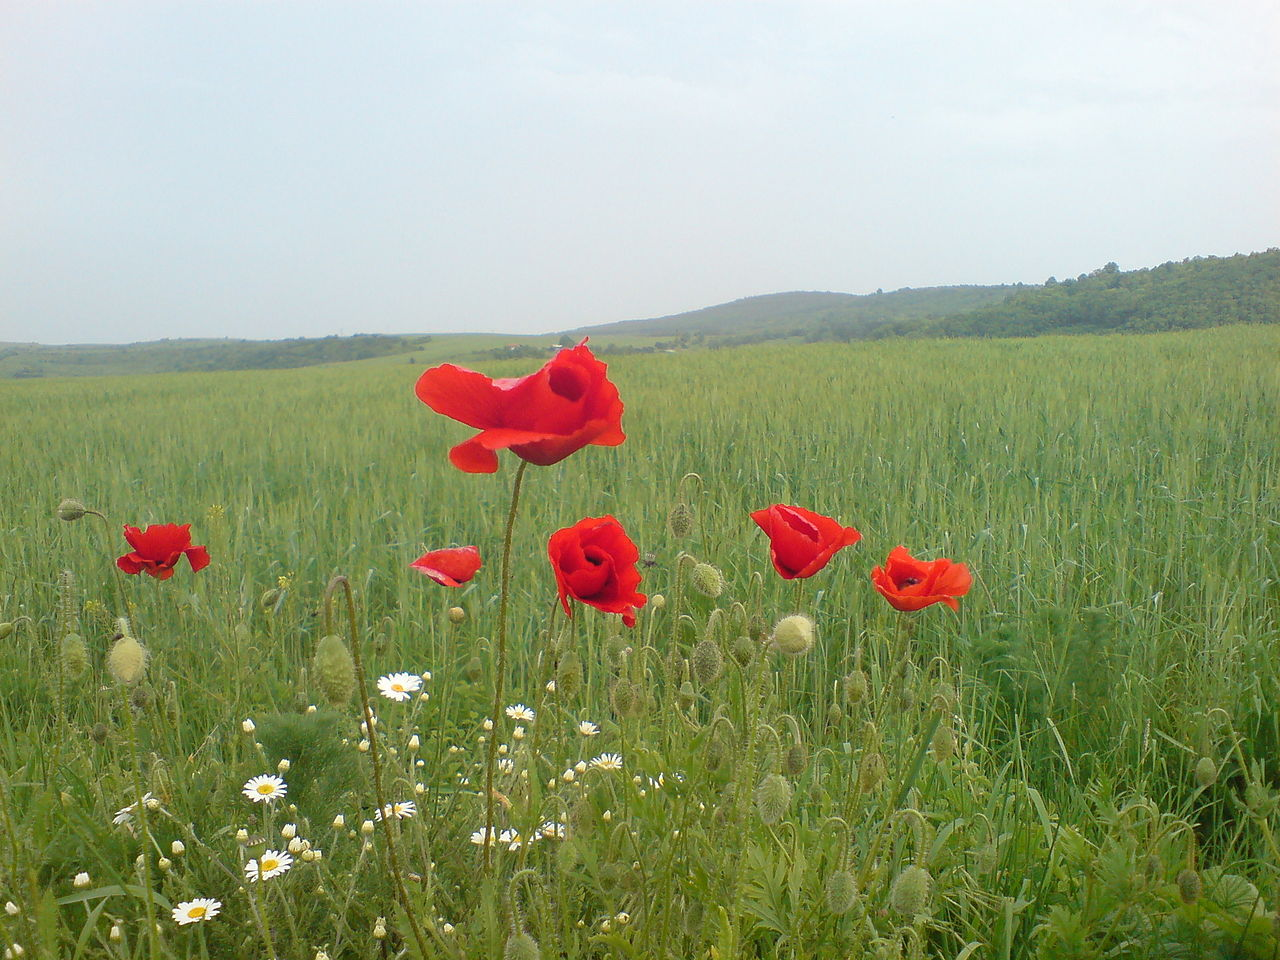 http://upload.wikimedia.org/wikipedia/commons/thumb/5/5d/Poppy_in_wheat_field.JPG/1280px-Poppy_in_wheat_field.JPG